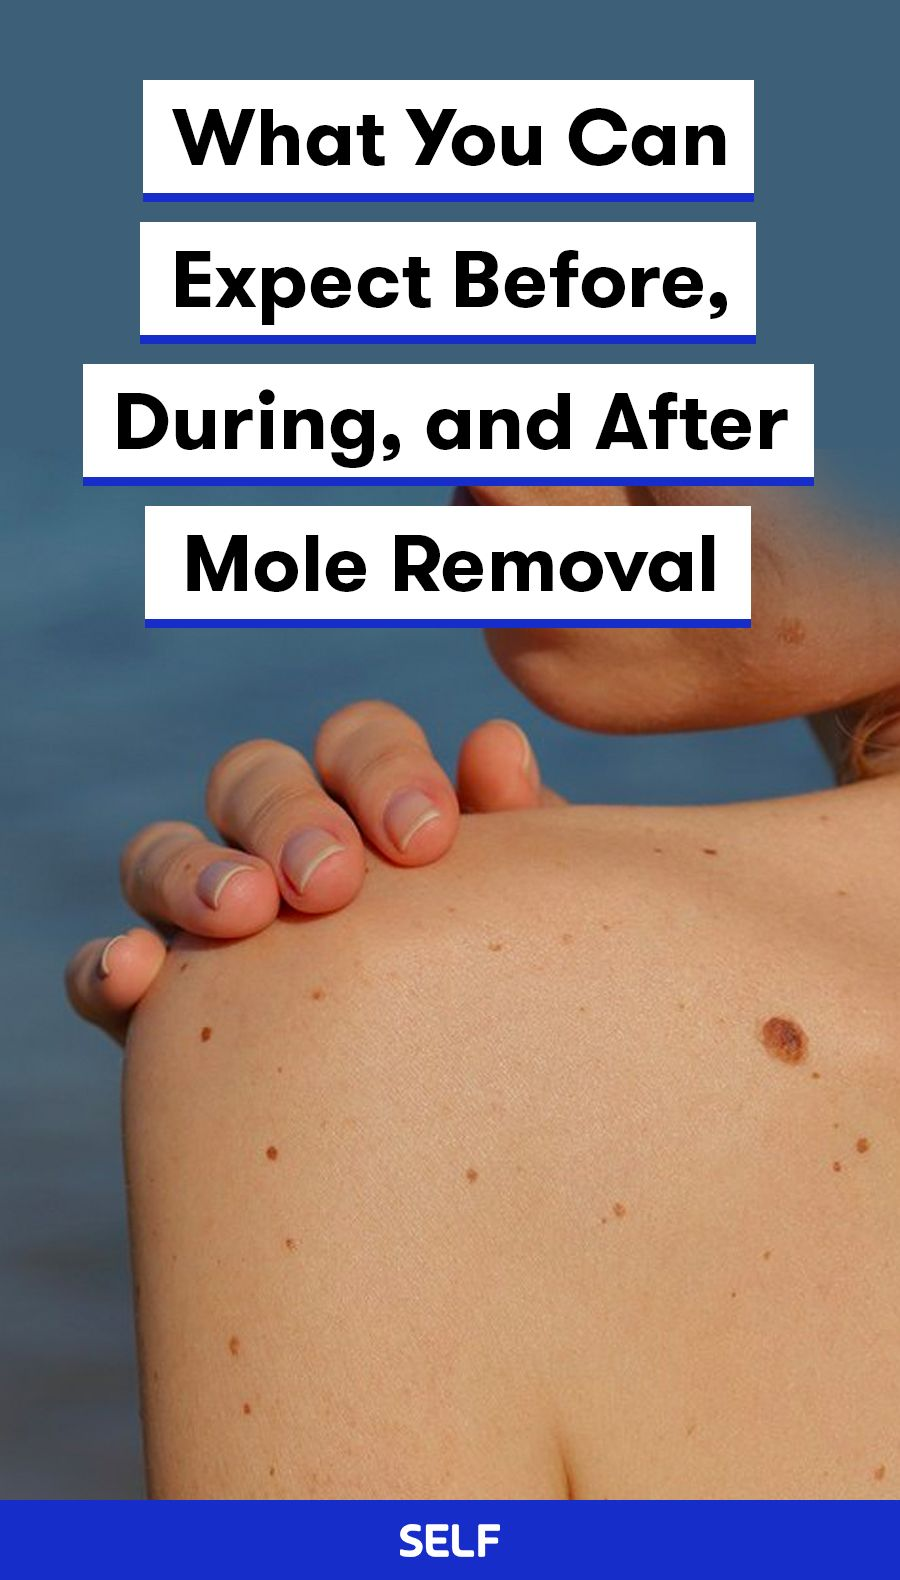 What You Can Expect Before, During, and After Mole Removal